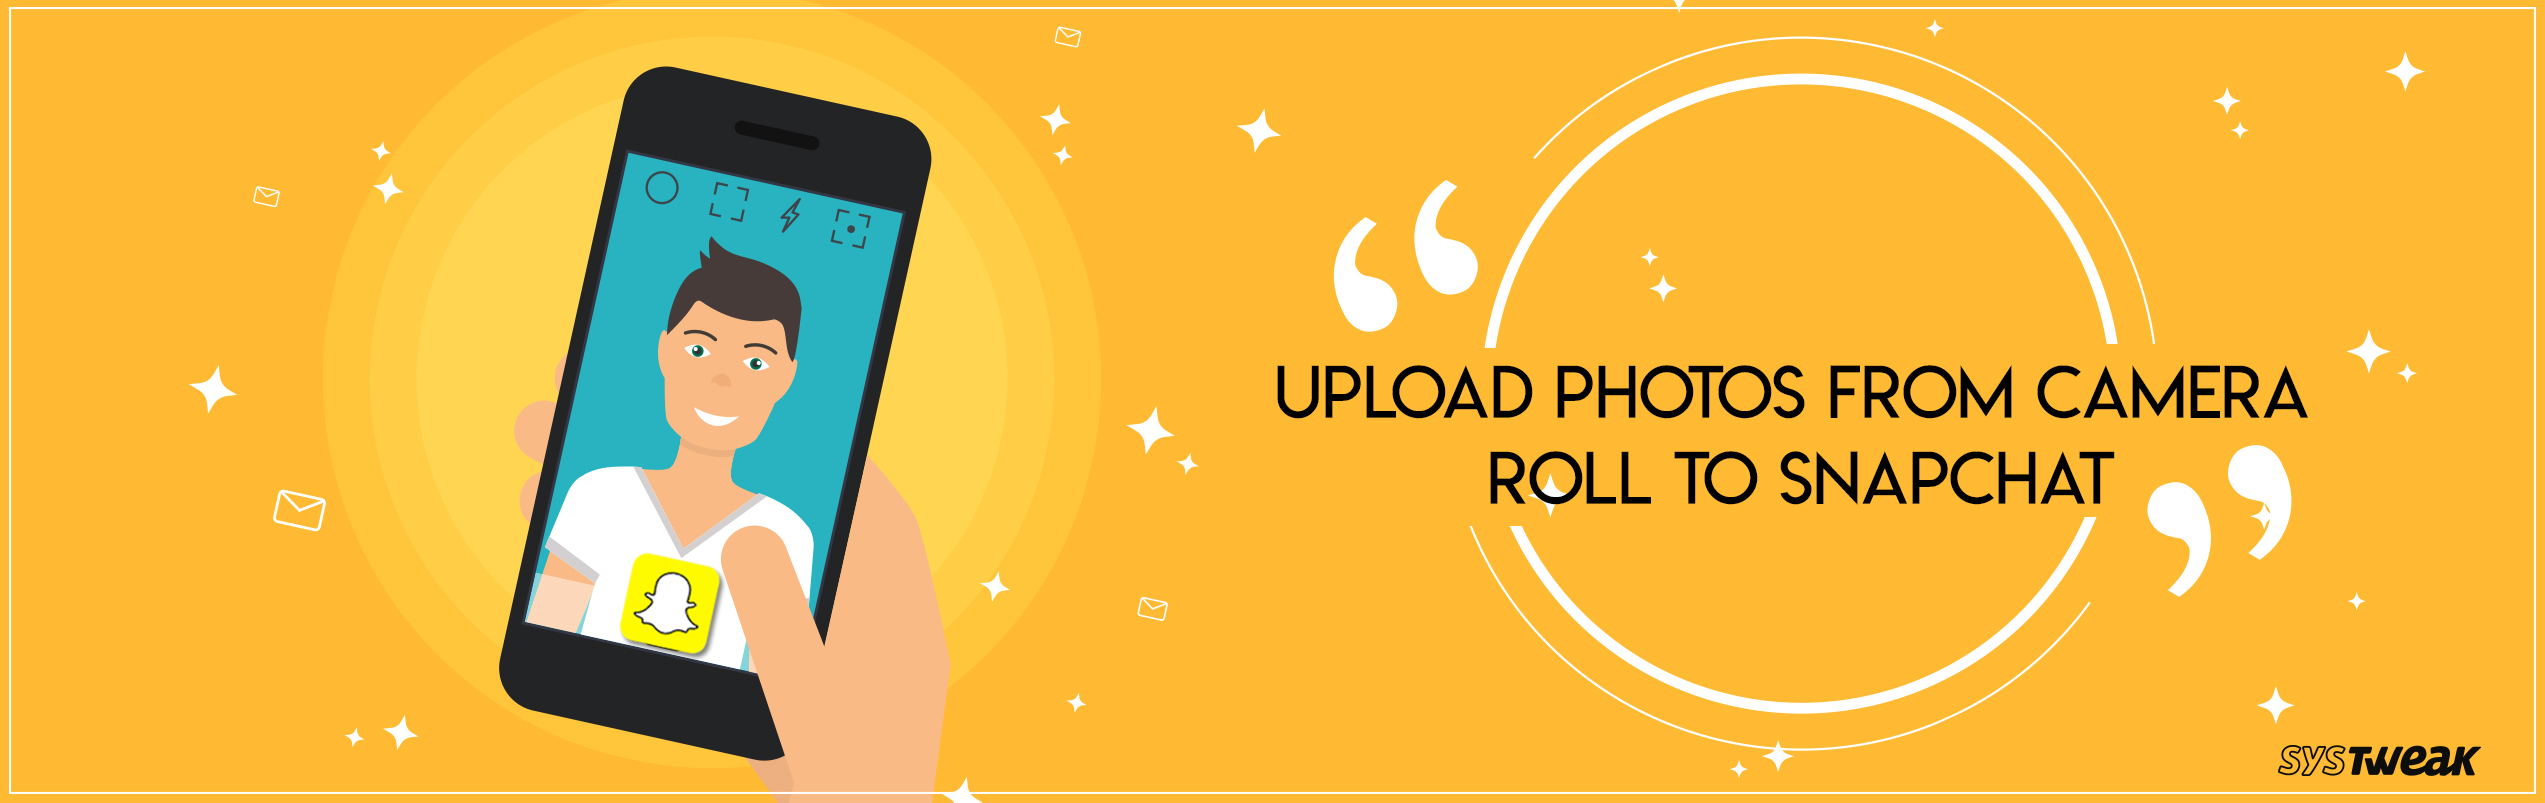 How To Upload Photos From Camera Roll To Snapchat